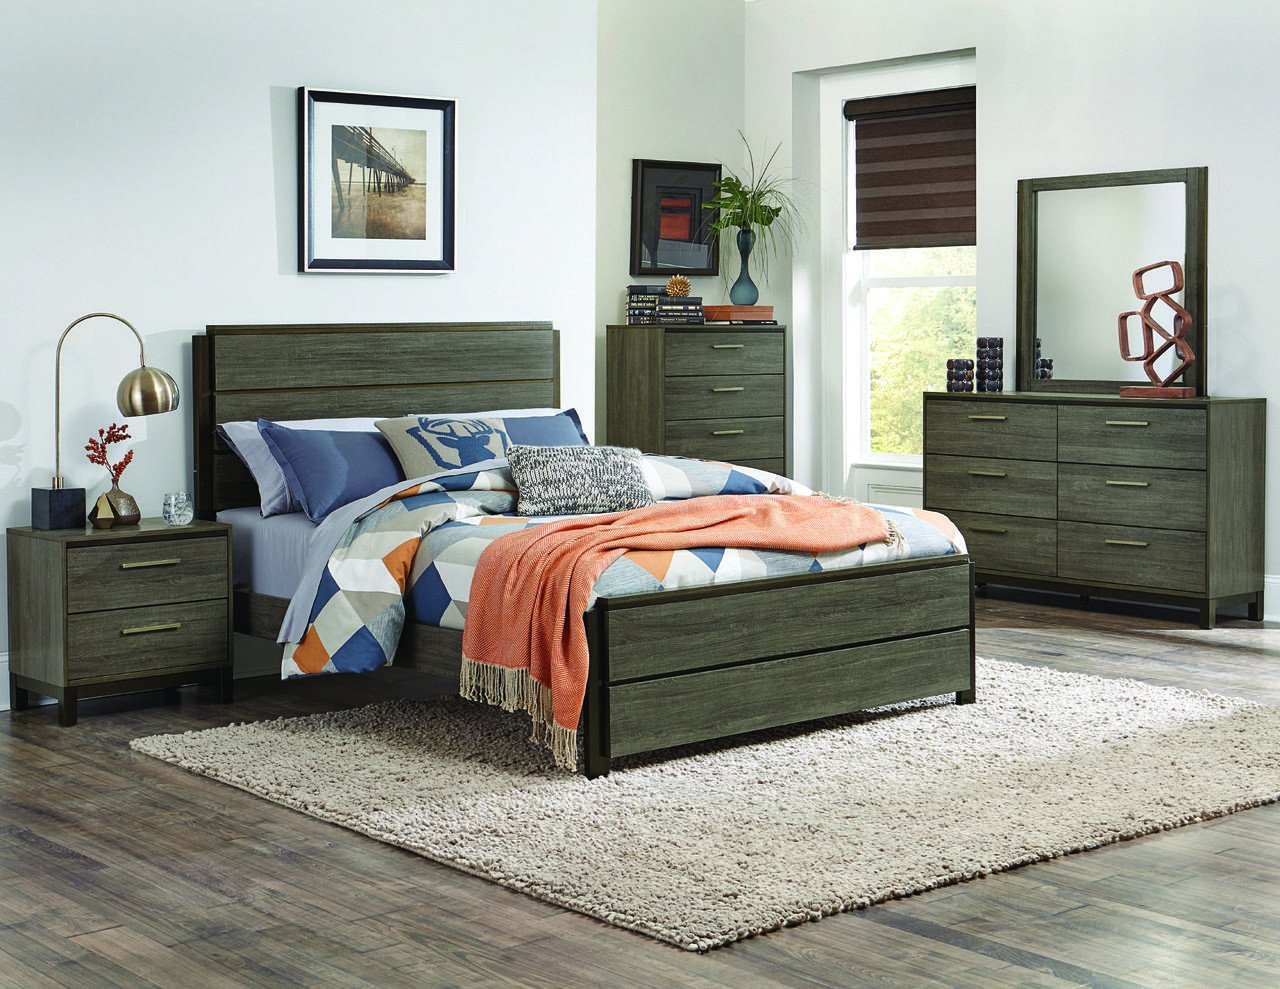 Cheap Queen Size Bedroom Set Lovely Homelegance Vestavia Collection Queen Size Bedroom Set 1936